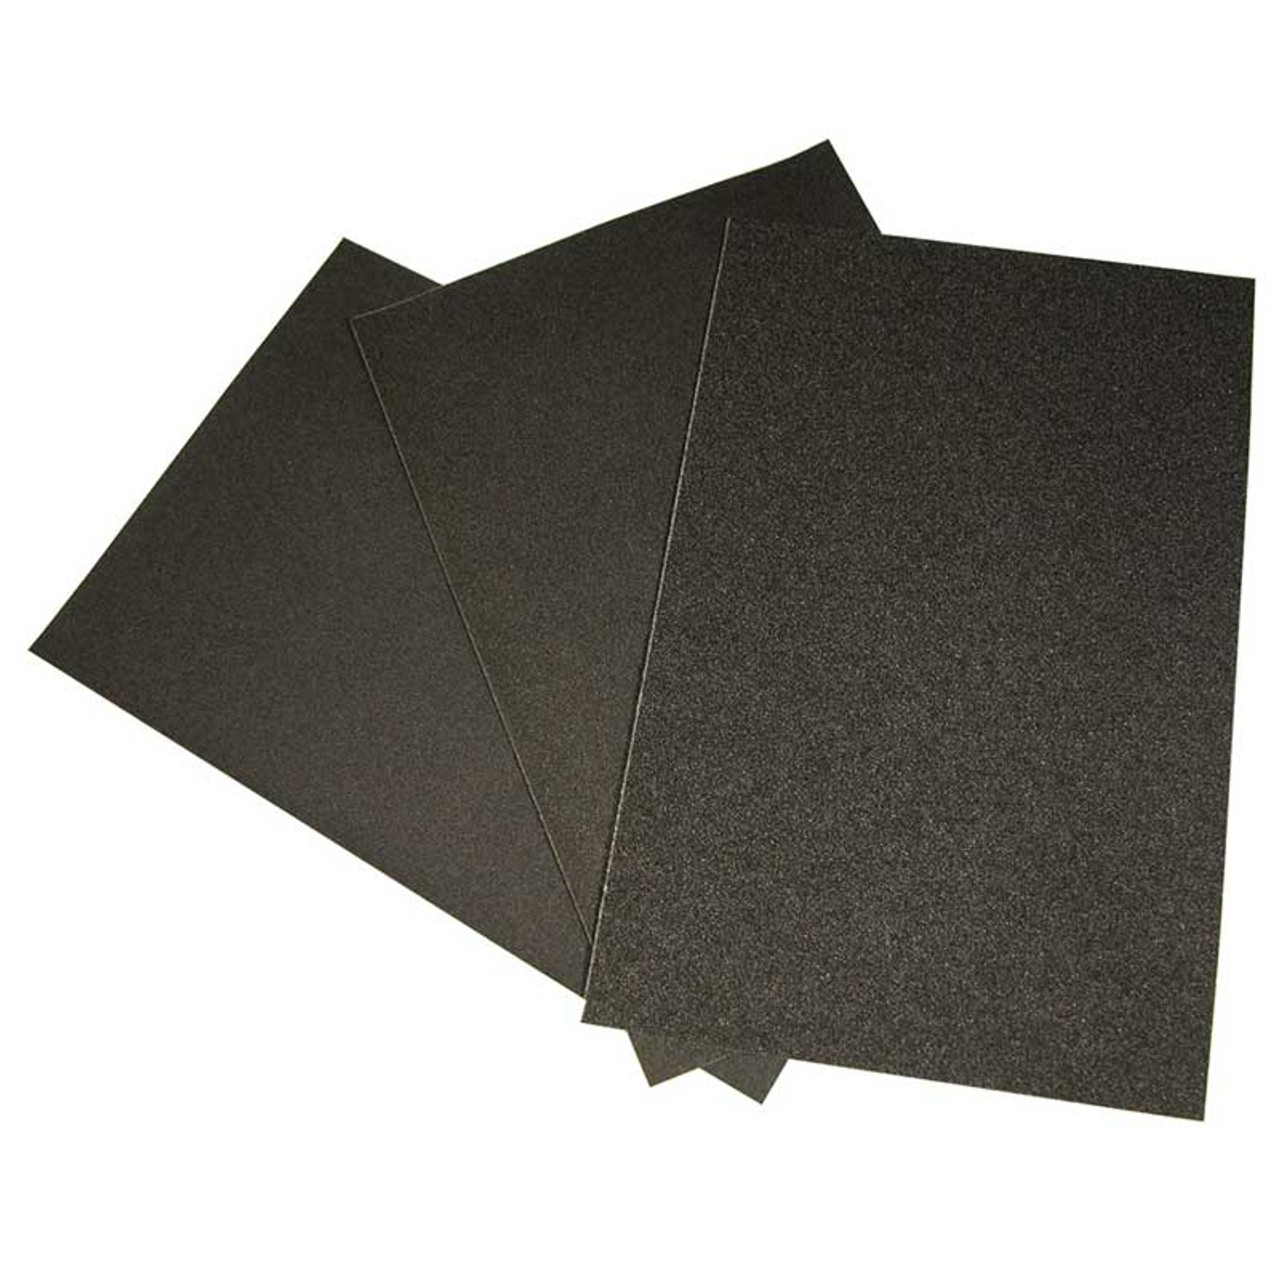 Meltblown Cloth Dusting Filters Fabric Paper for Mask Filtering Layer Application,10//20//30//50//100M FiMi Non-Woven Fabric Roll